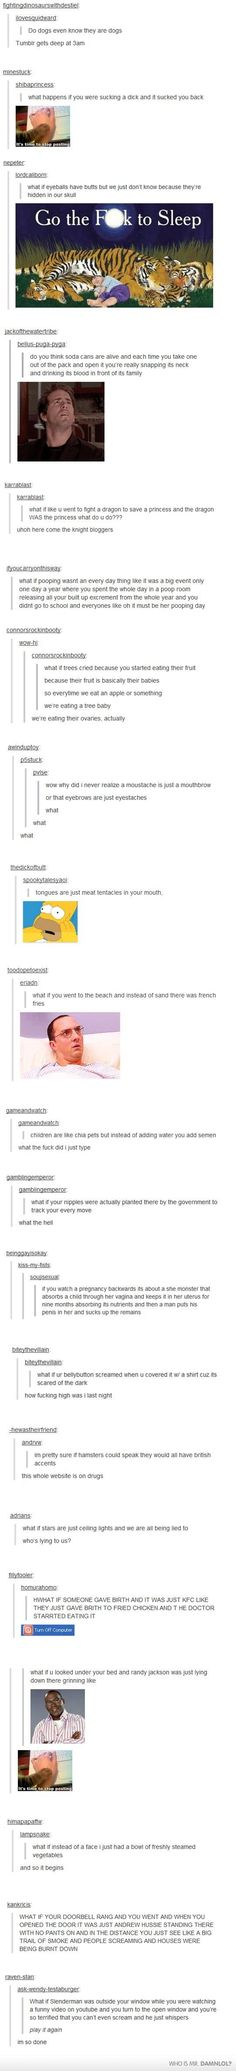 How Do You Find The Good Stuff On Tumblr?